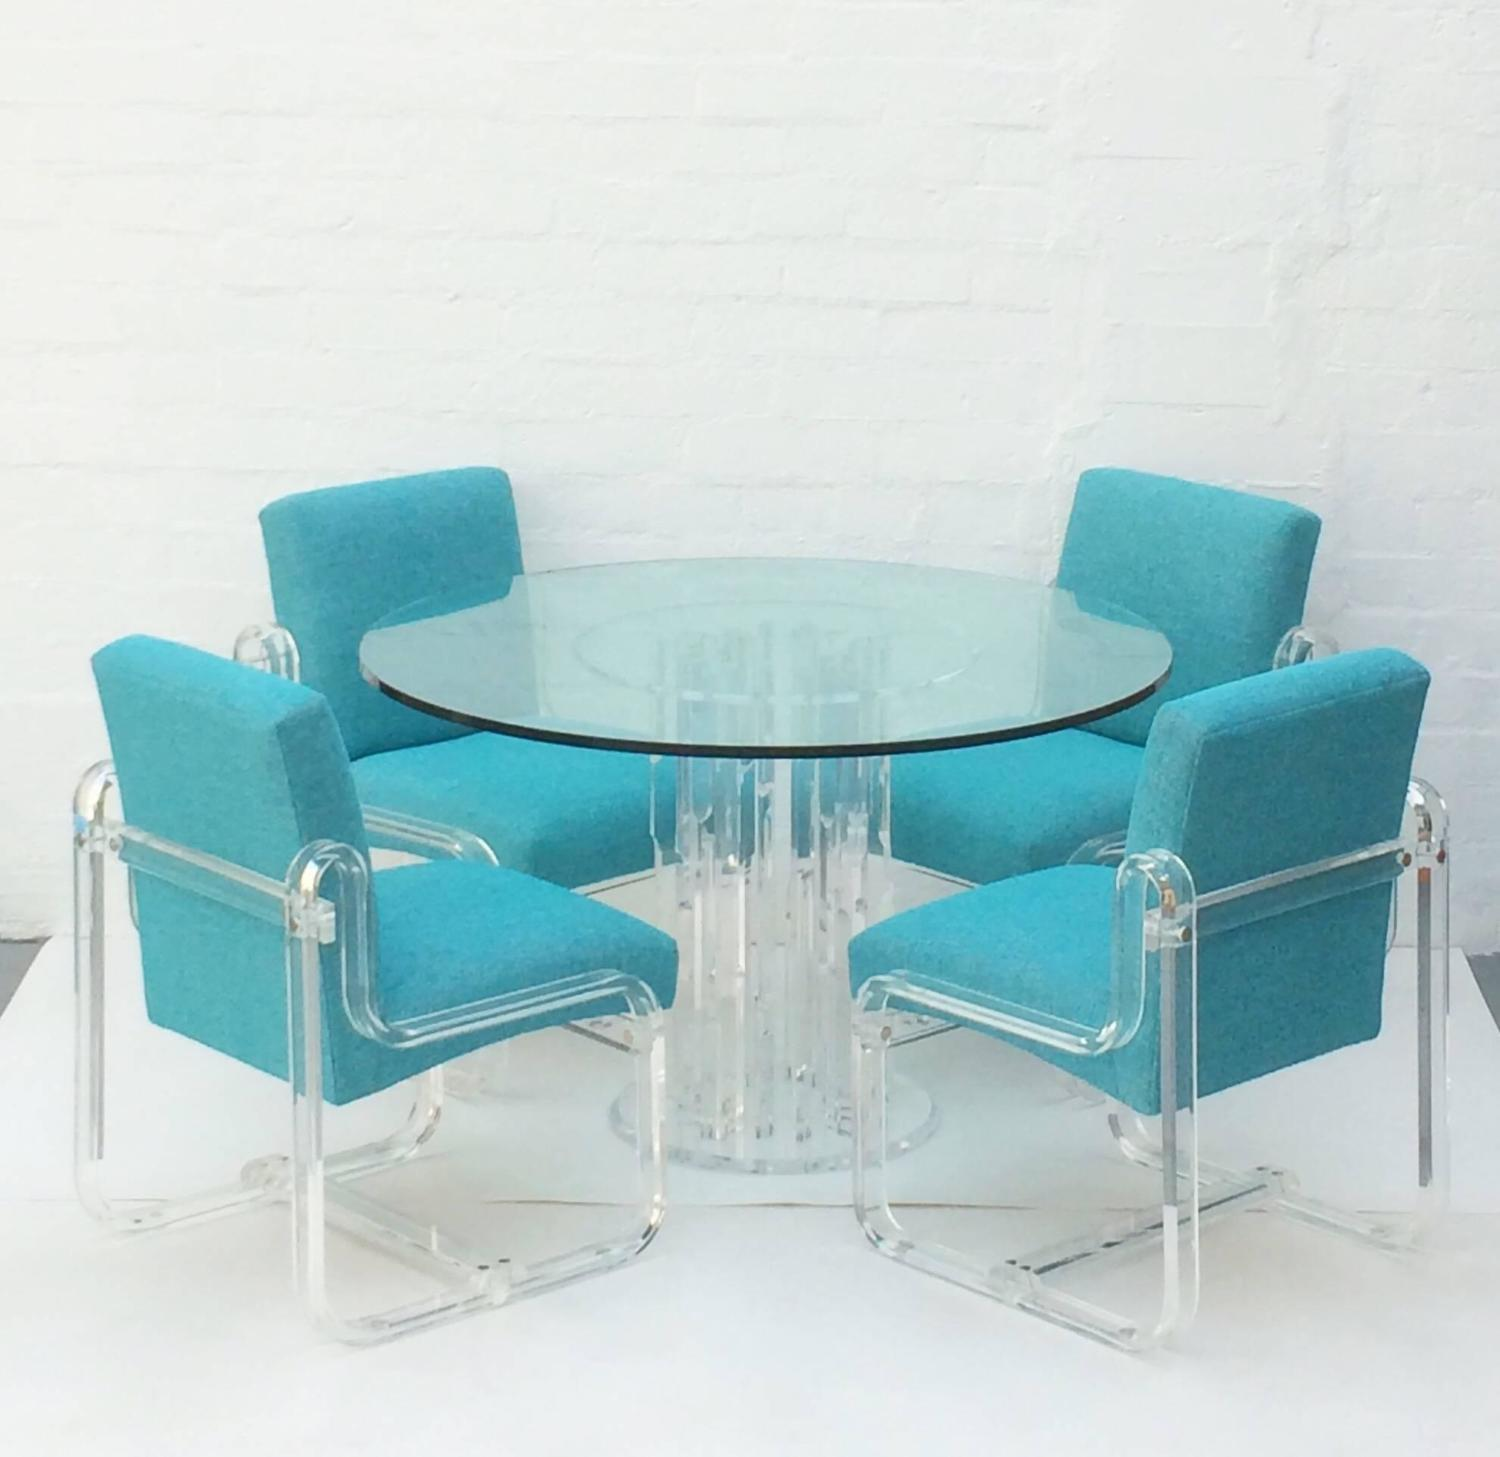 Acrylic Dining Chairs Set Of Four Acrylic Dining Chairs By Vivid For Sale At 1stdibs